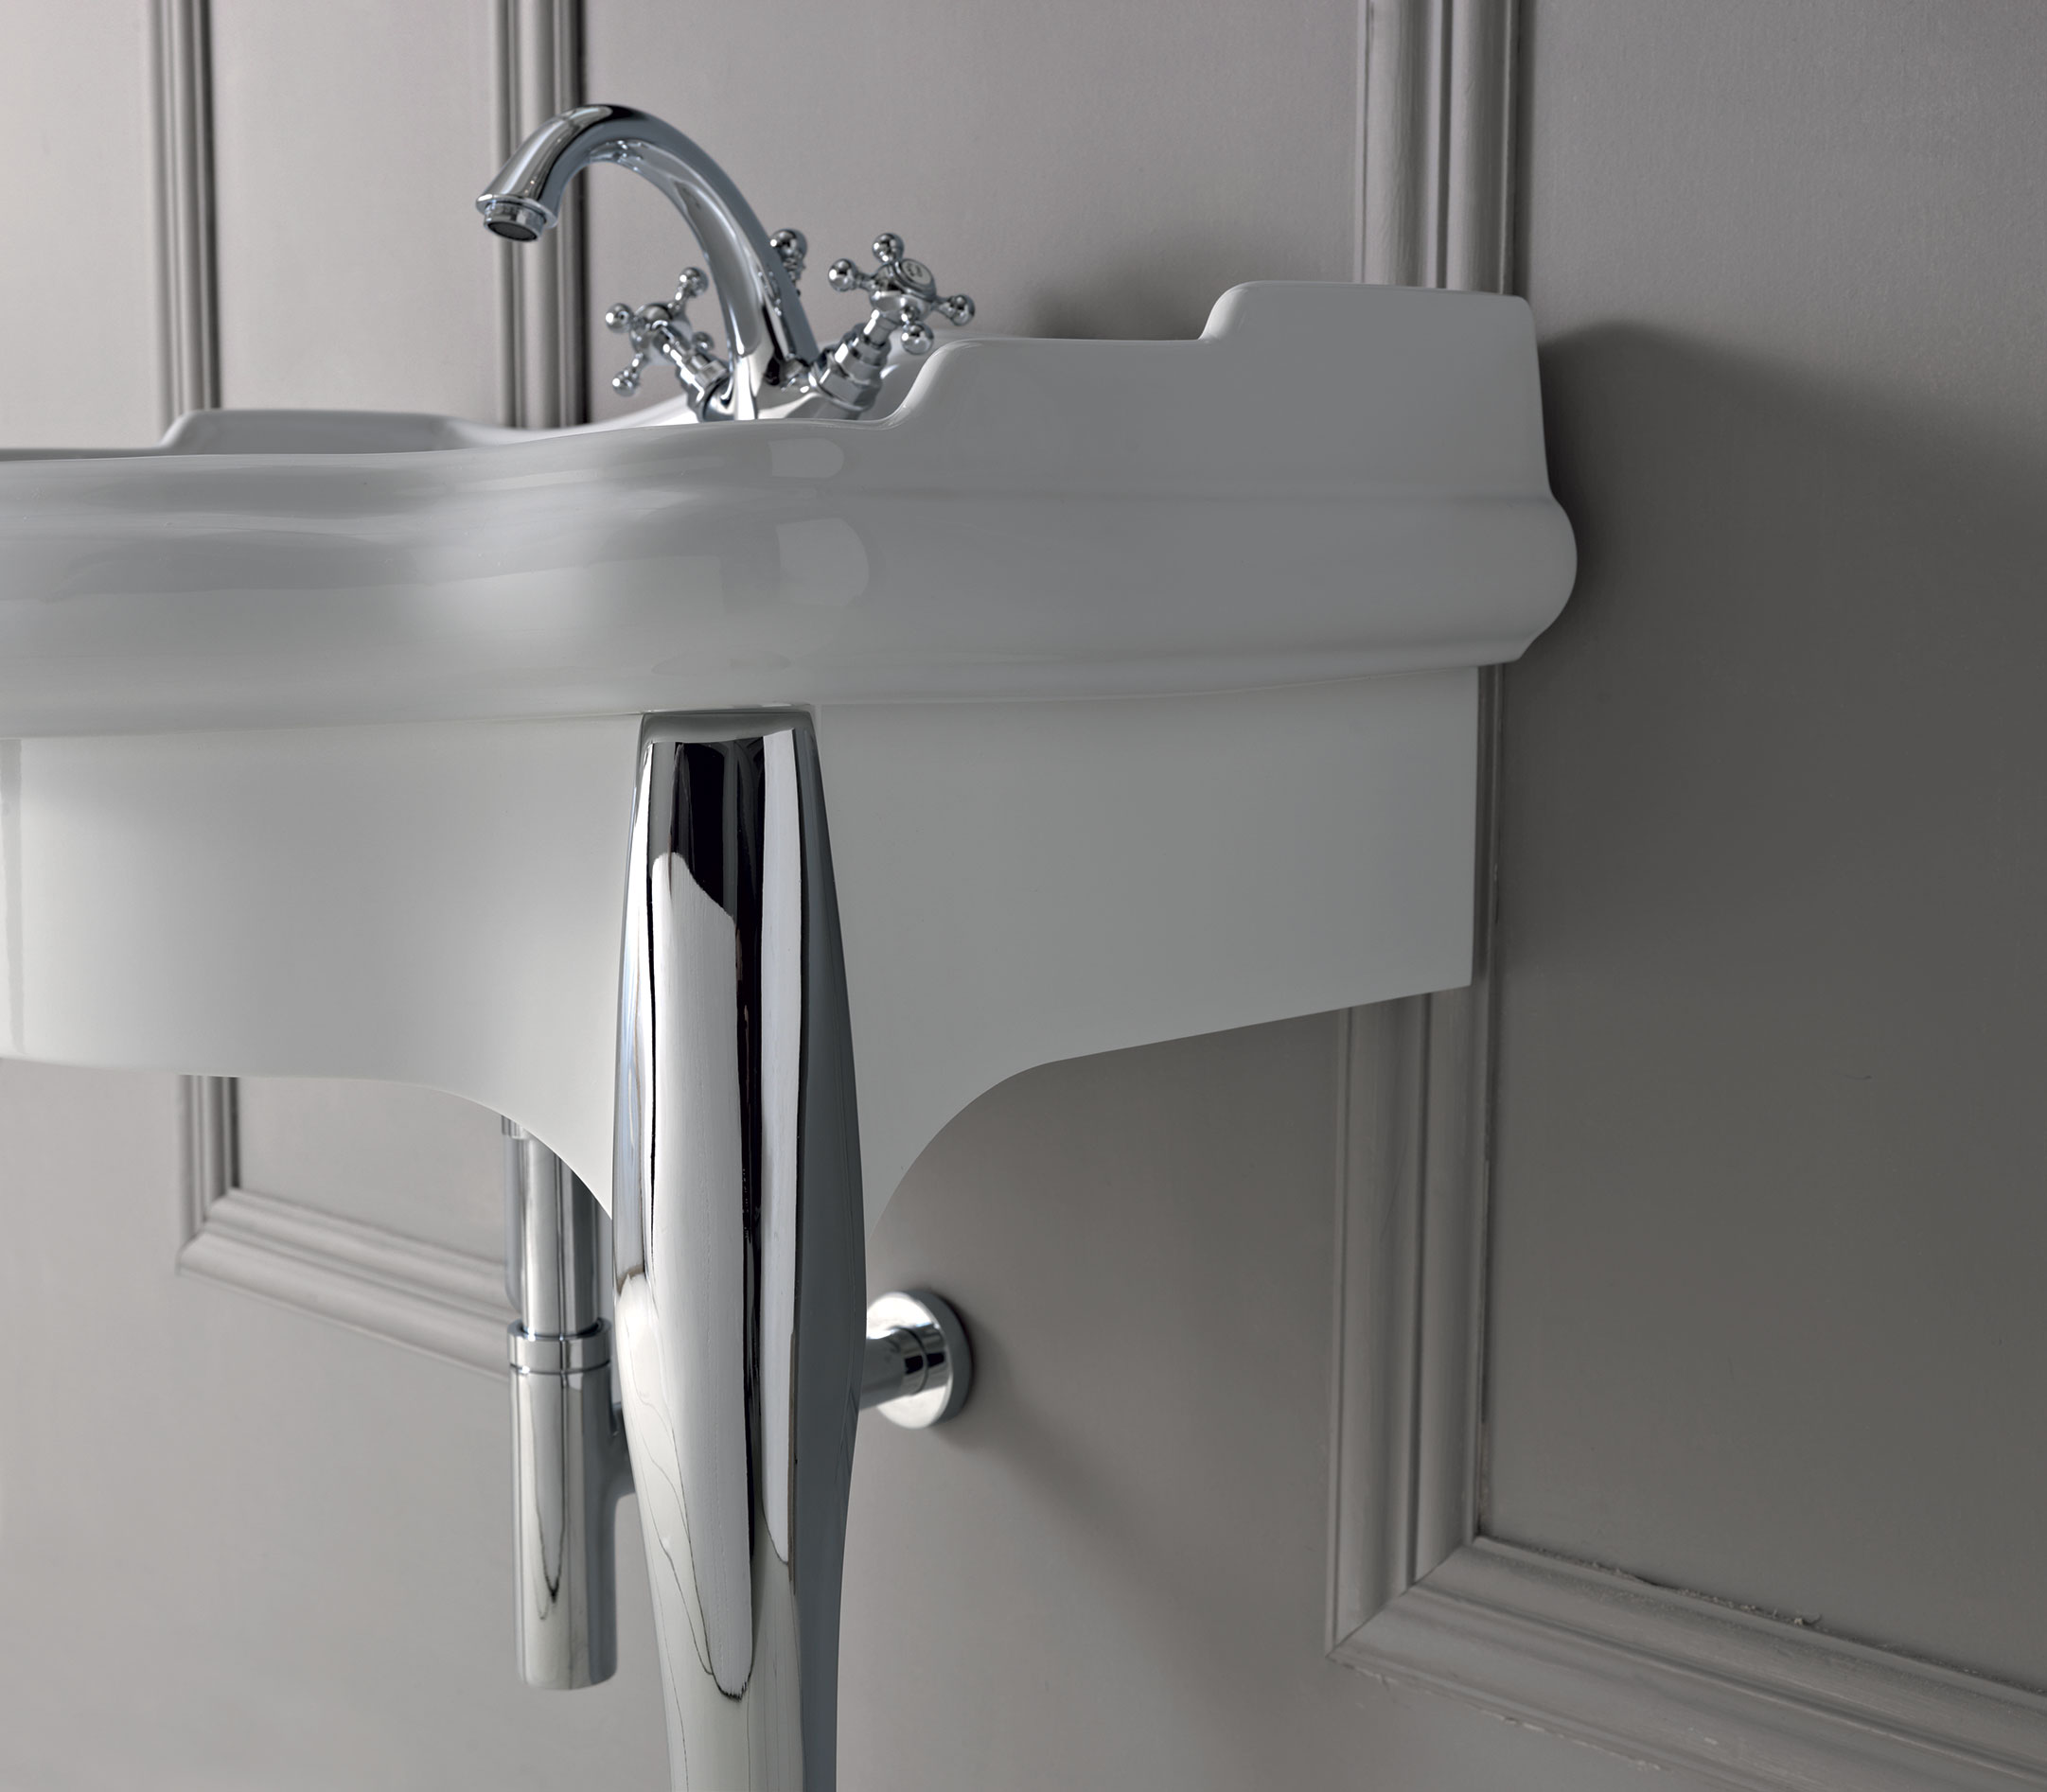 Lavabo a colonna design vintage 73x54 for Lavabo a colonna